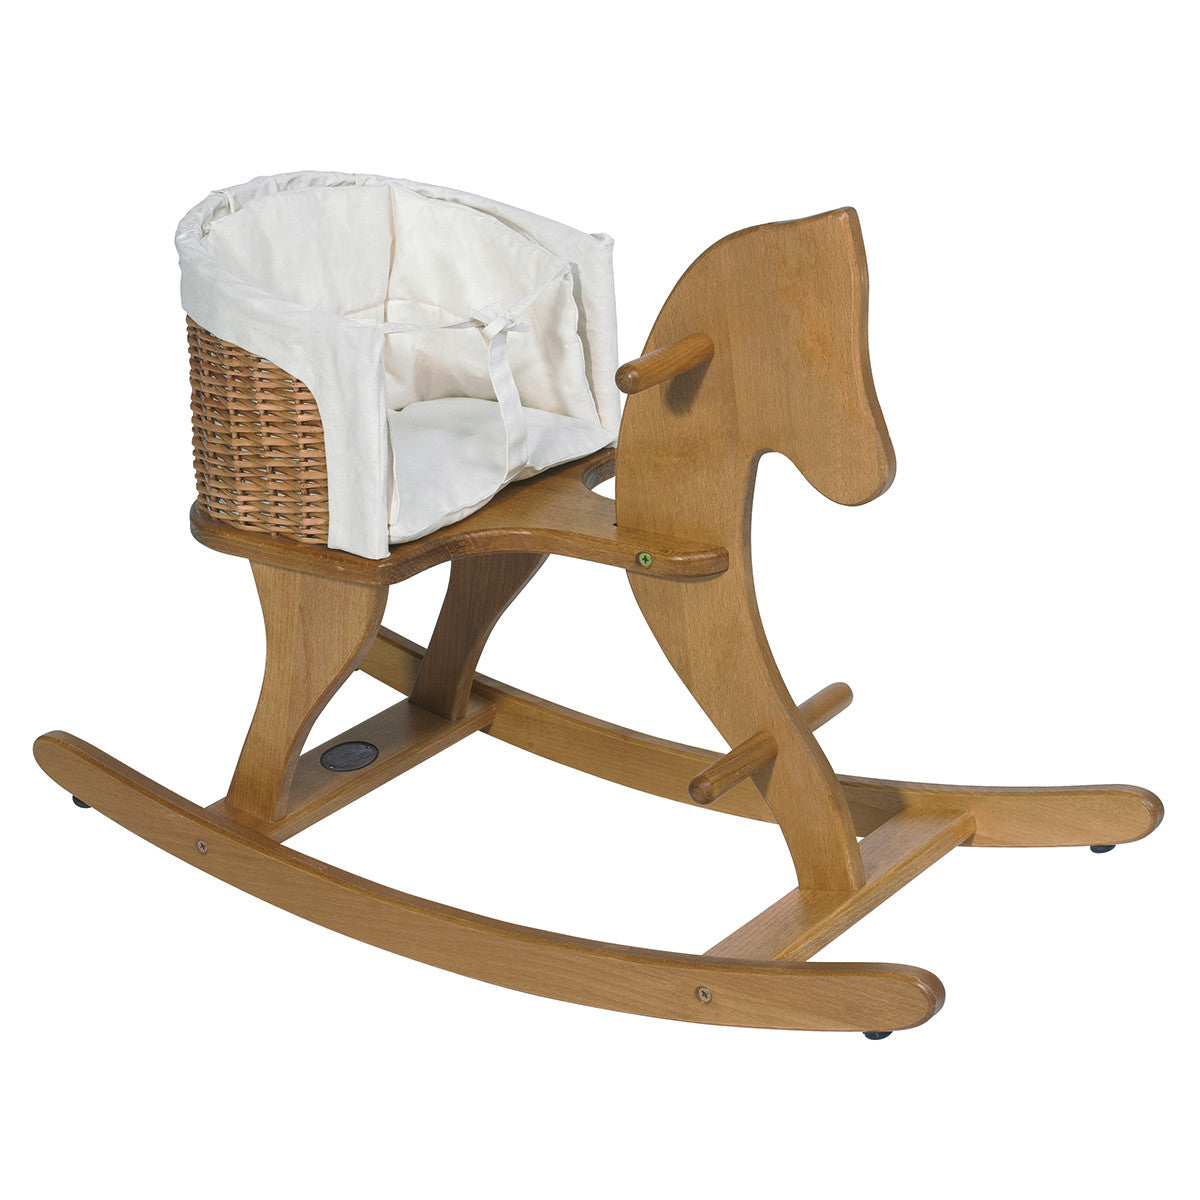 Wooden Rocking Horse by Moulin Roty - Little Citizens Boutique